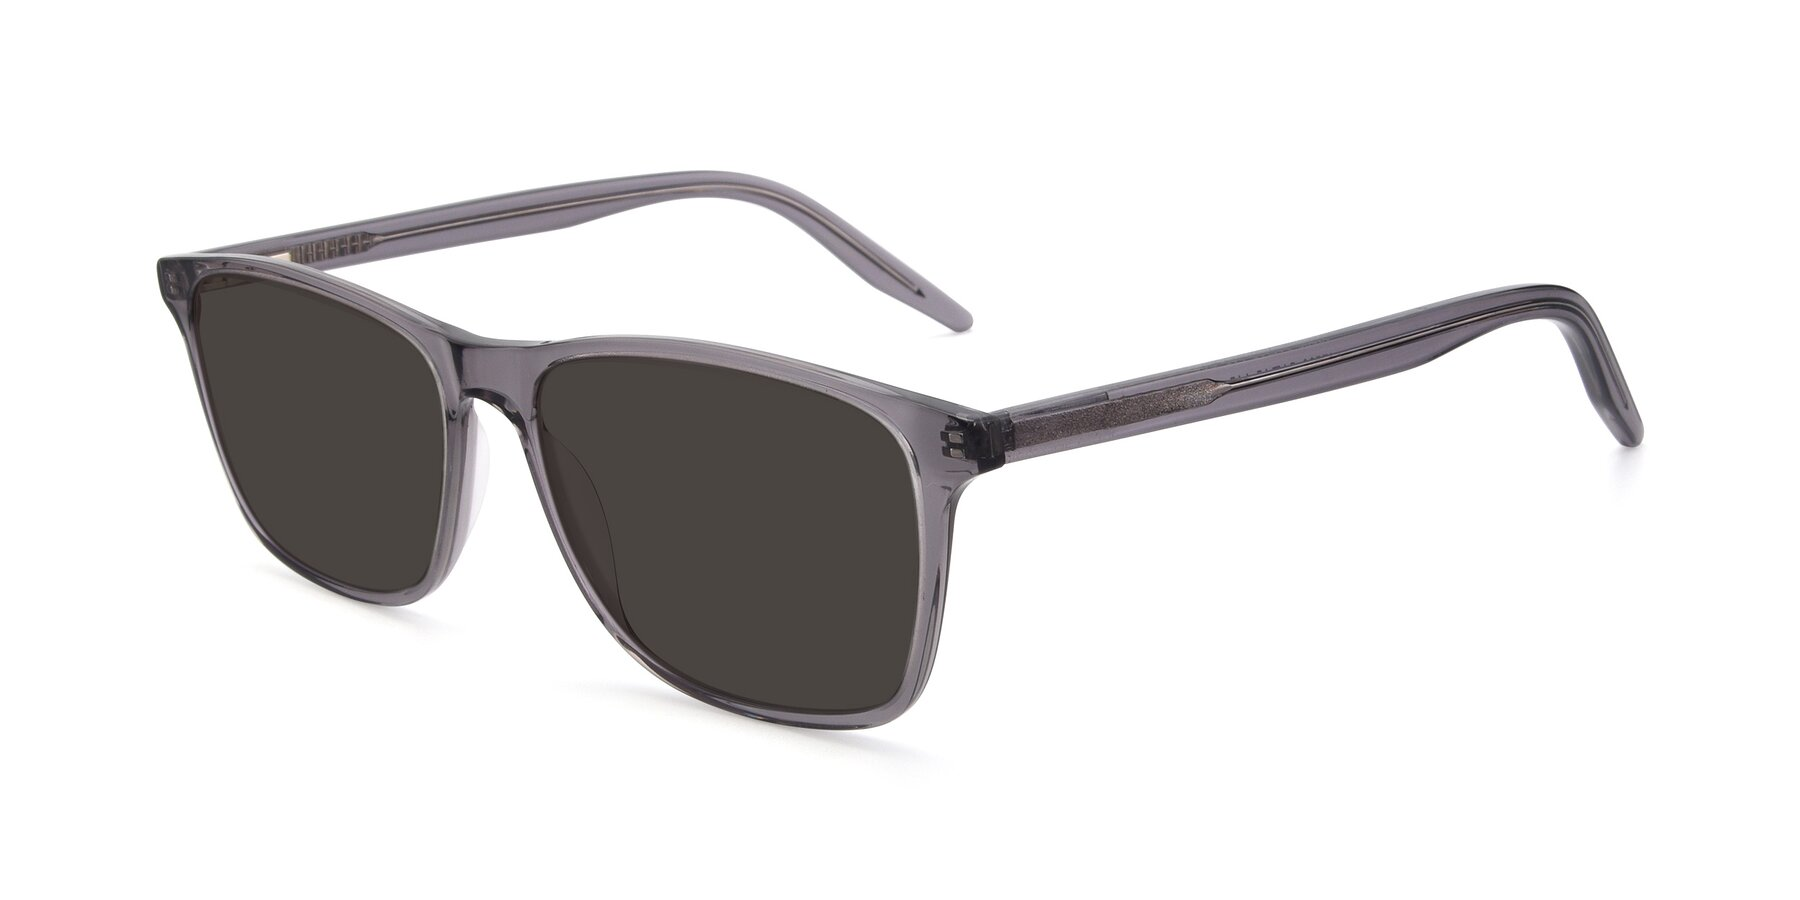 Angle of 17500 in Transparent Grey with Gray Tinted Lenses